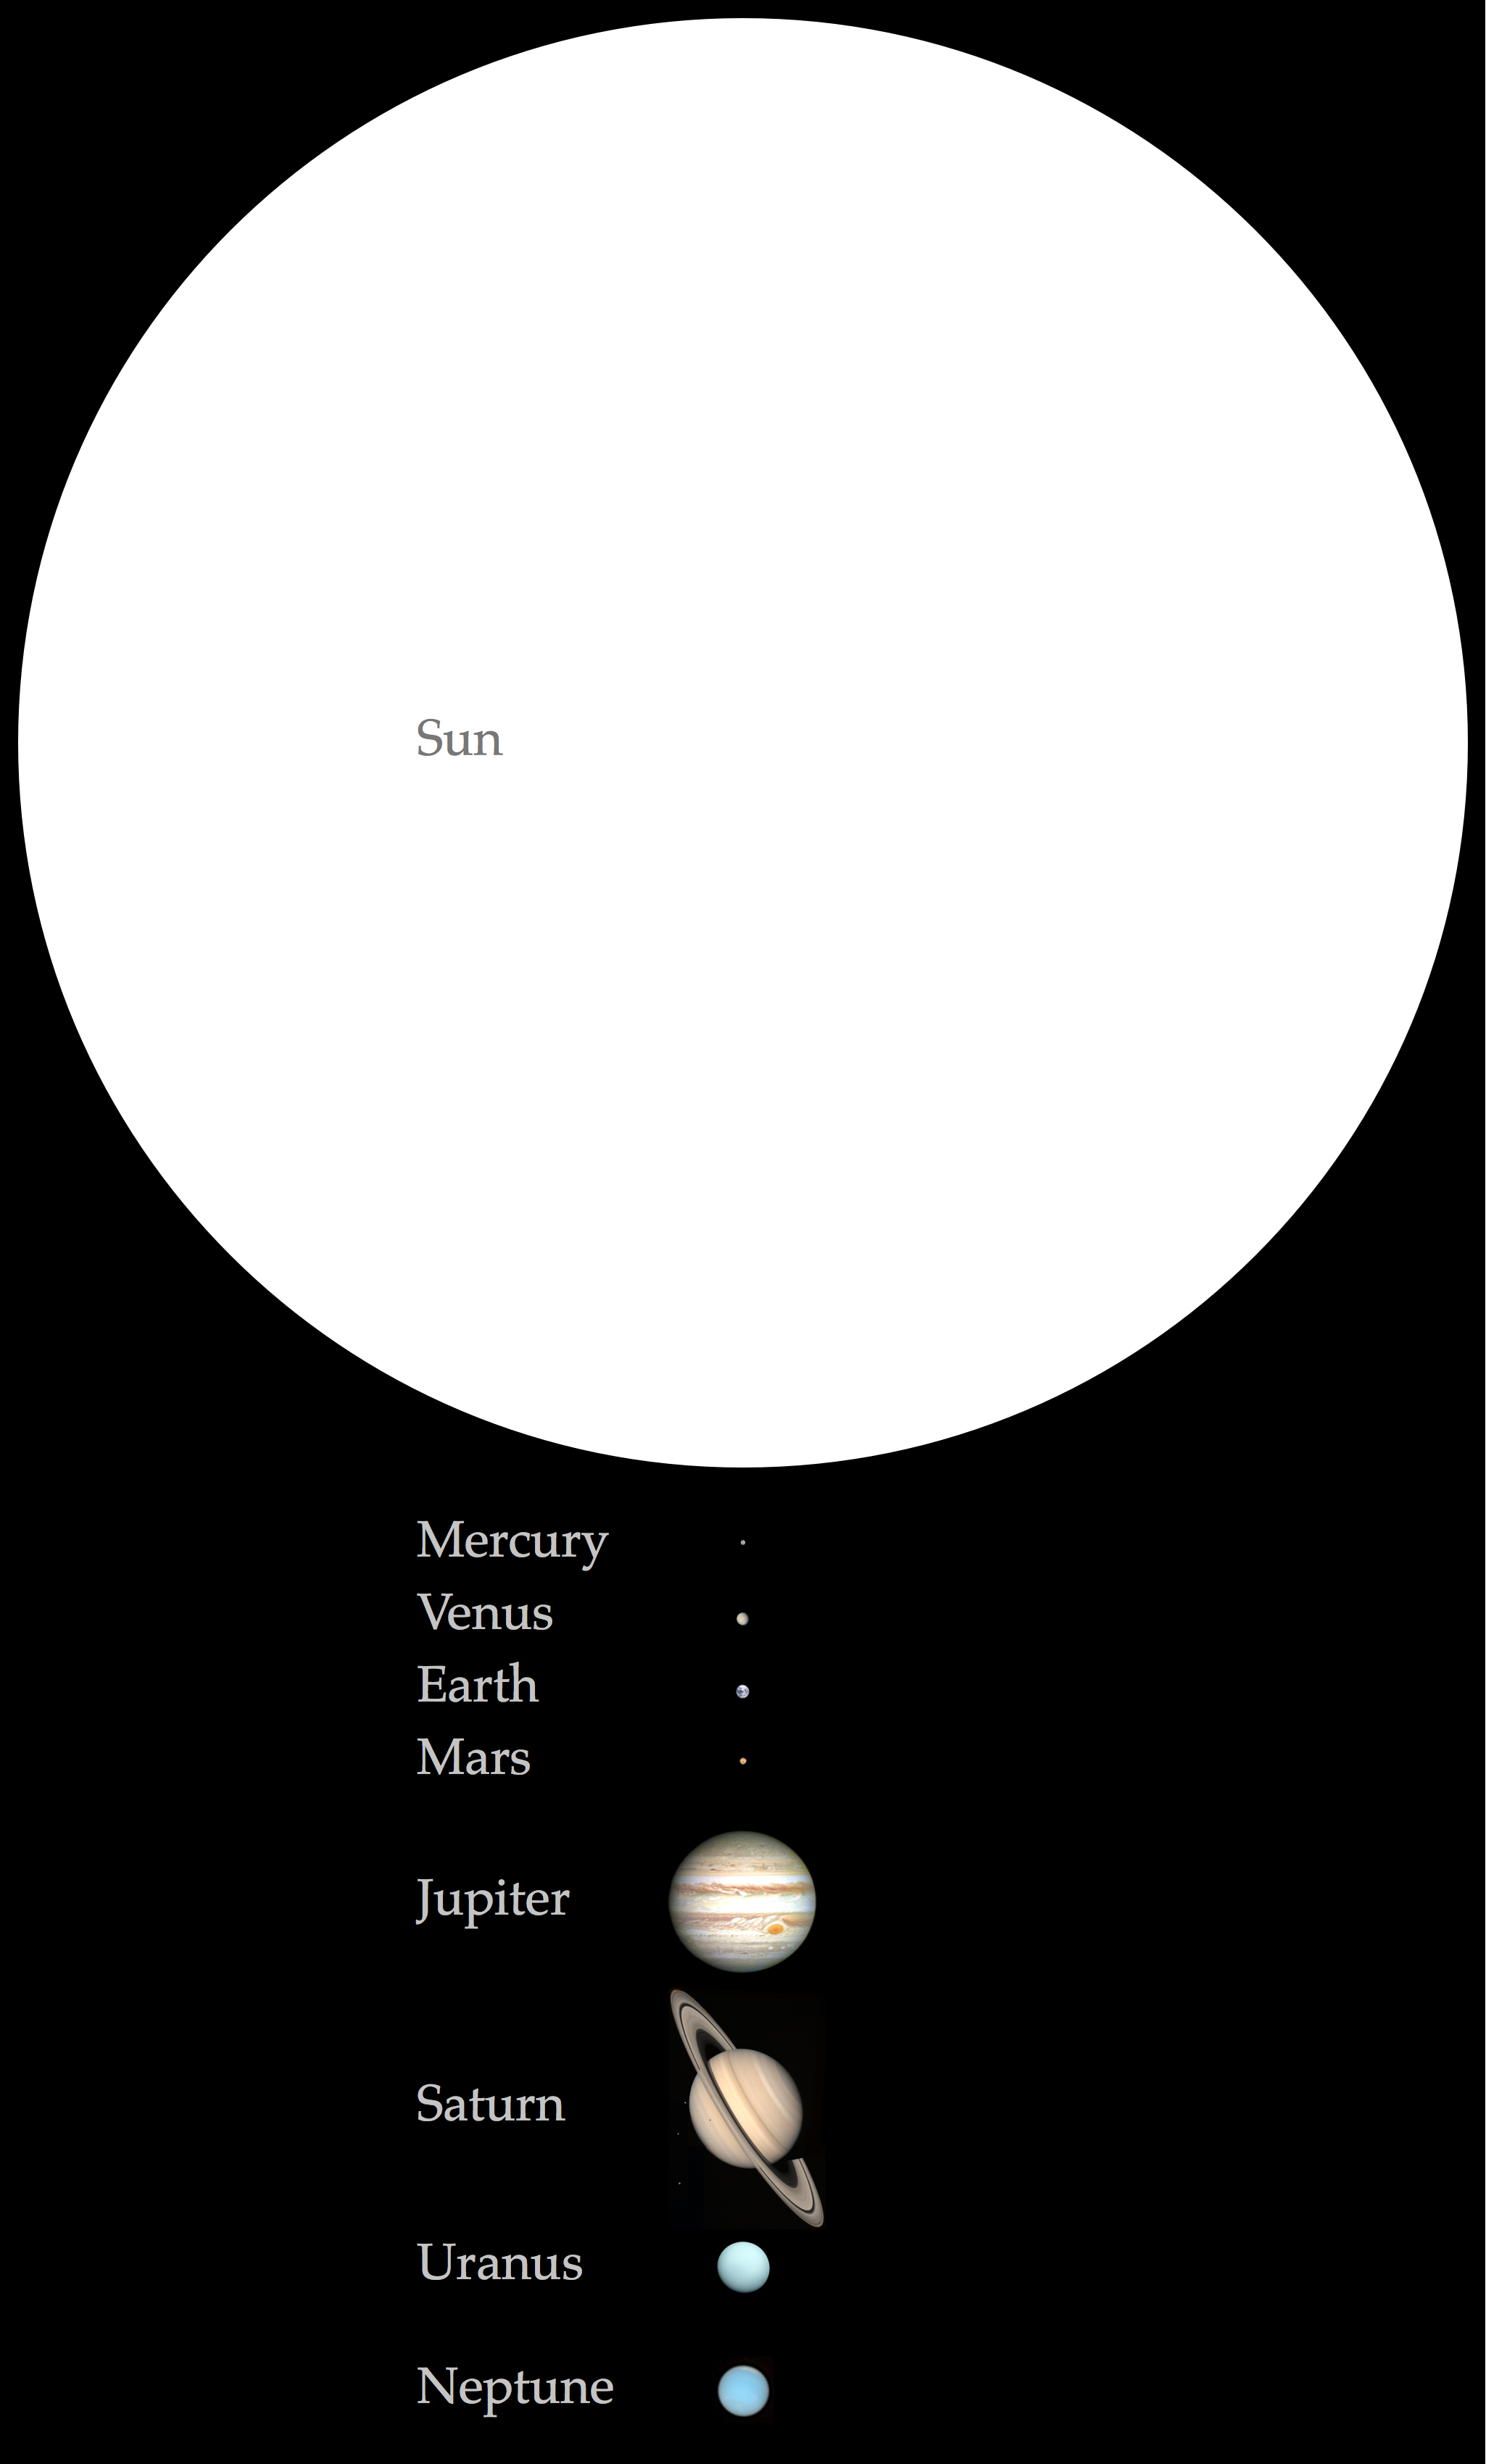 The Sun and planets in natural colors with correct relative sizes